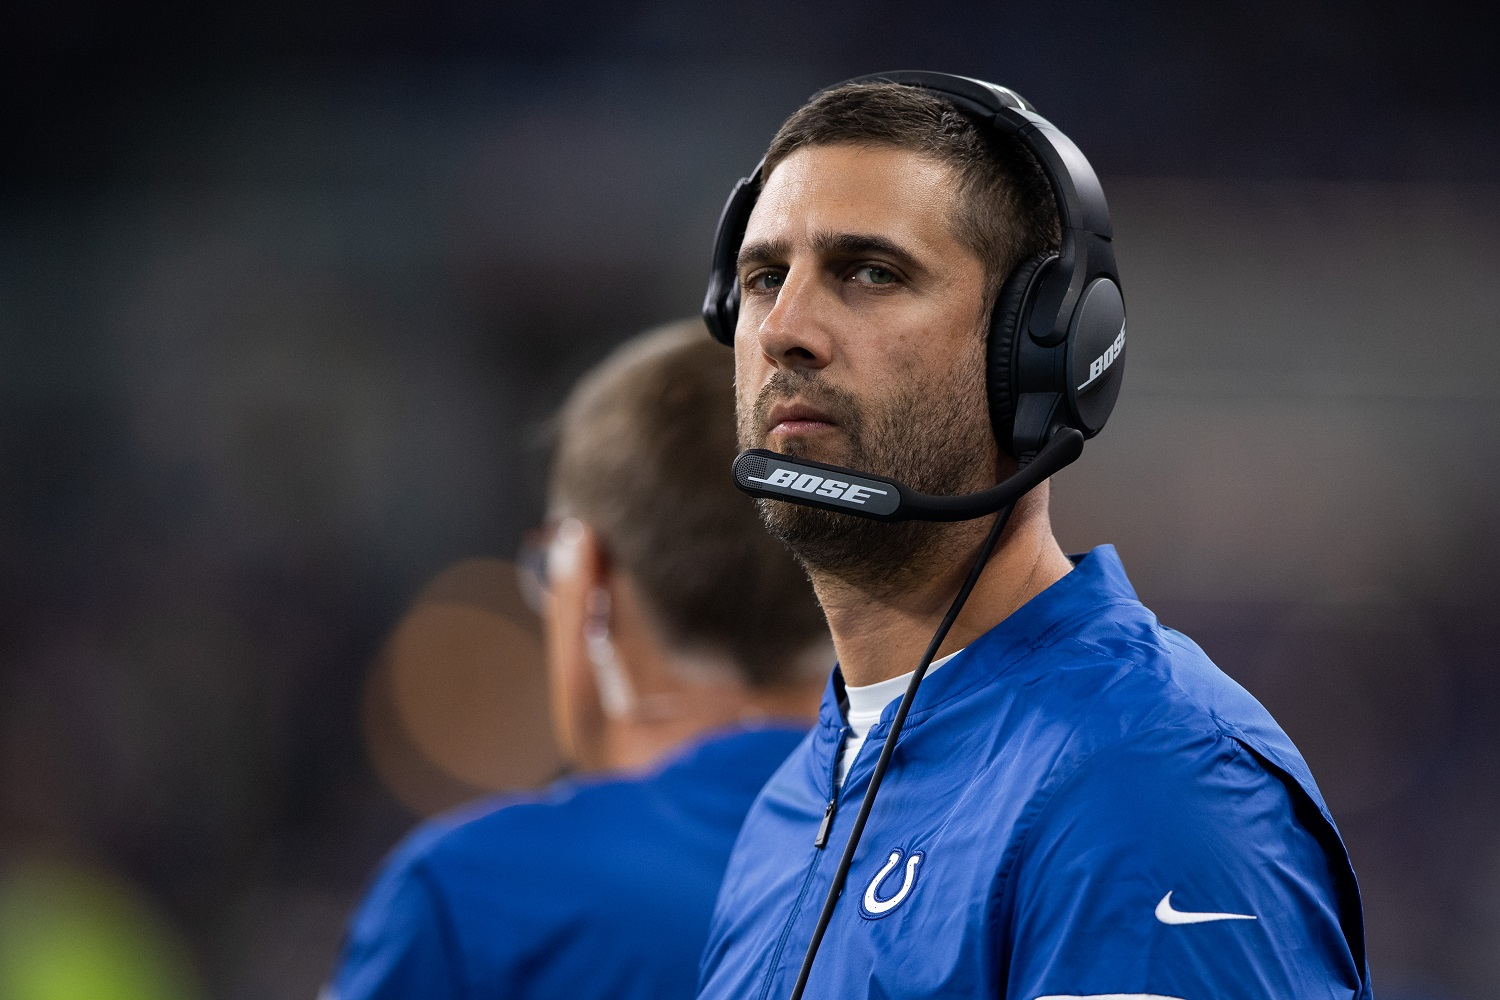 New Philadelphia Eagles head coach Nick Sirianni spent three seasons as the offensive coordinator of the NFL's Indianapolis Colts.